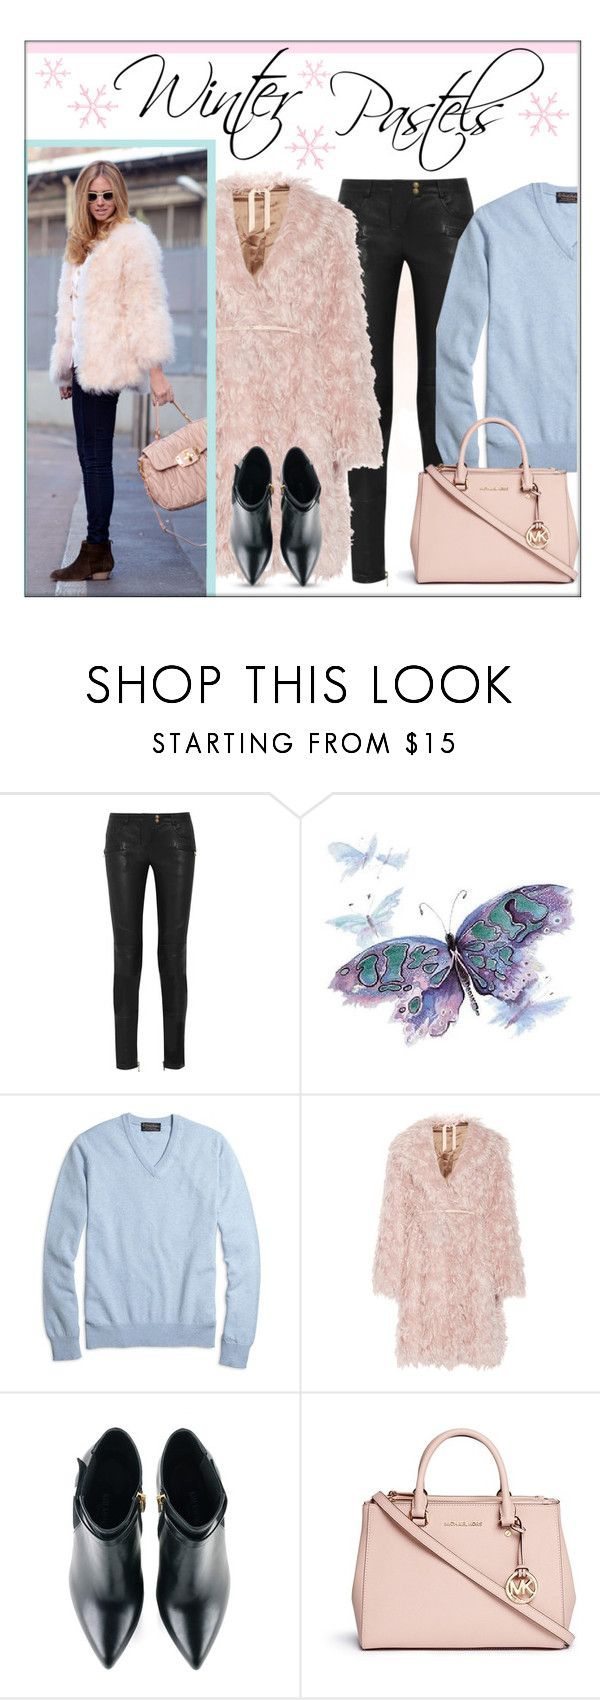 """""""Winter Pastels"""" by lgb321 ❤ liked on Polyvore featuring Balmain, Brooks Brothers, N°21, Kim Kwang and Michael Kors"""